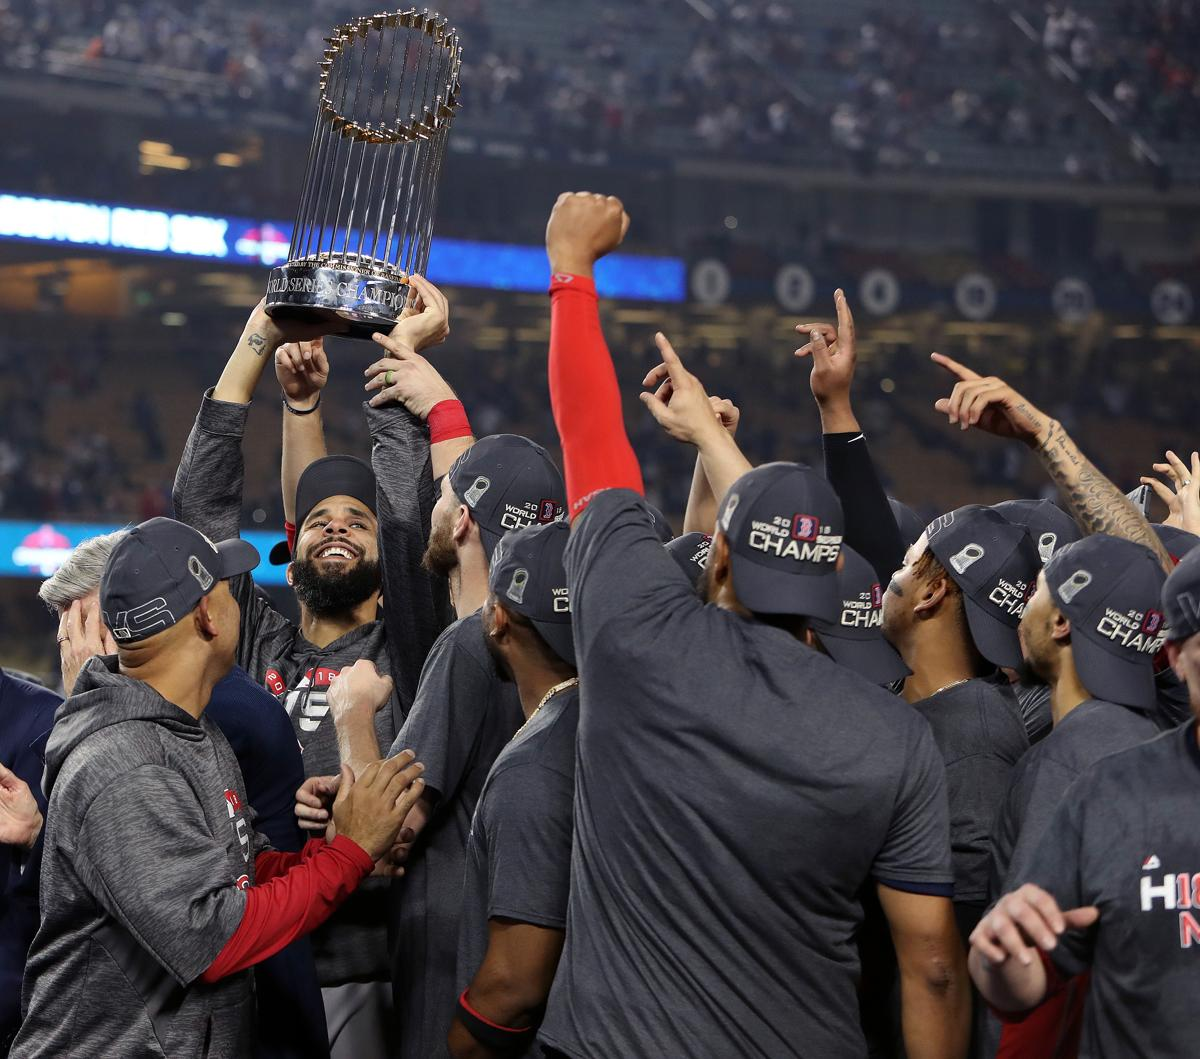 bf5009c9808 Red Sox can stake claim as one of the greatest teams in baseball history